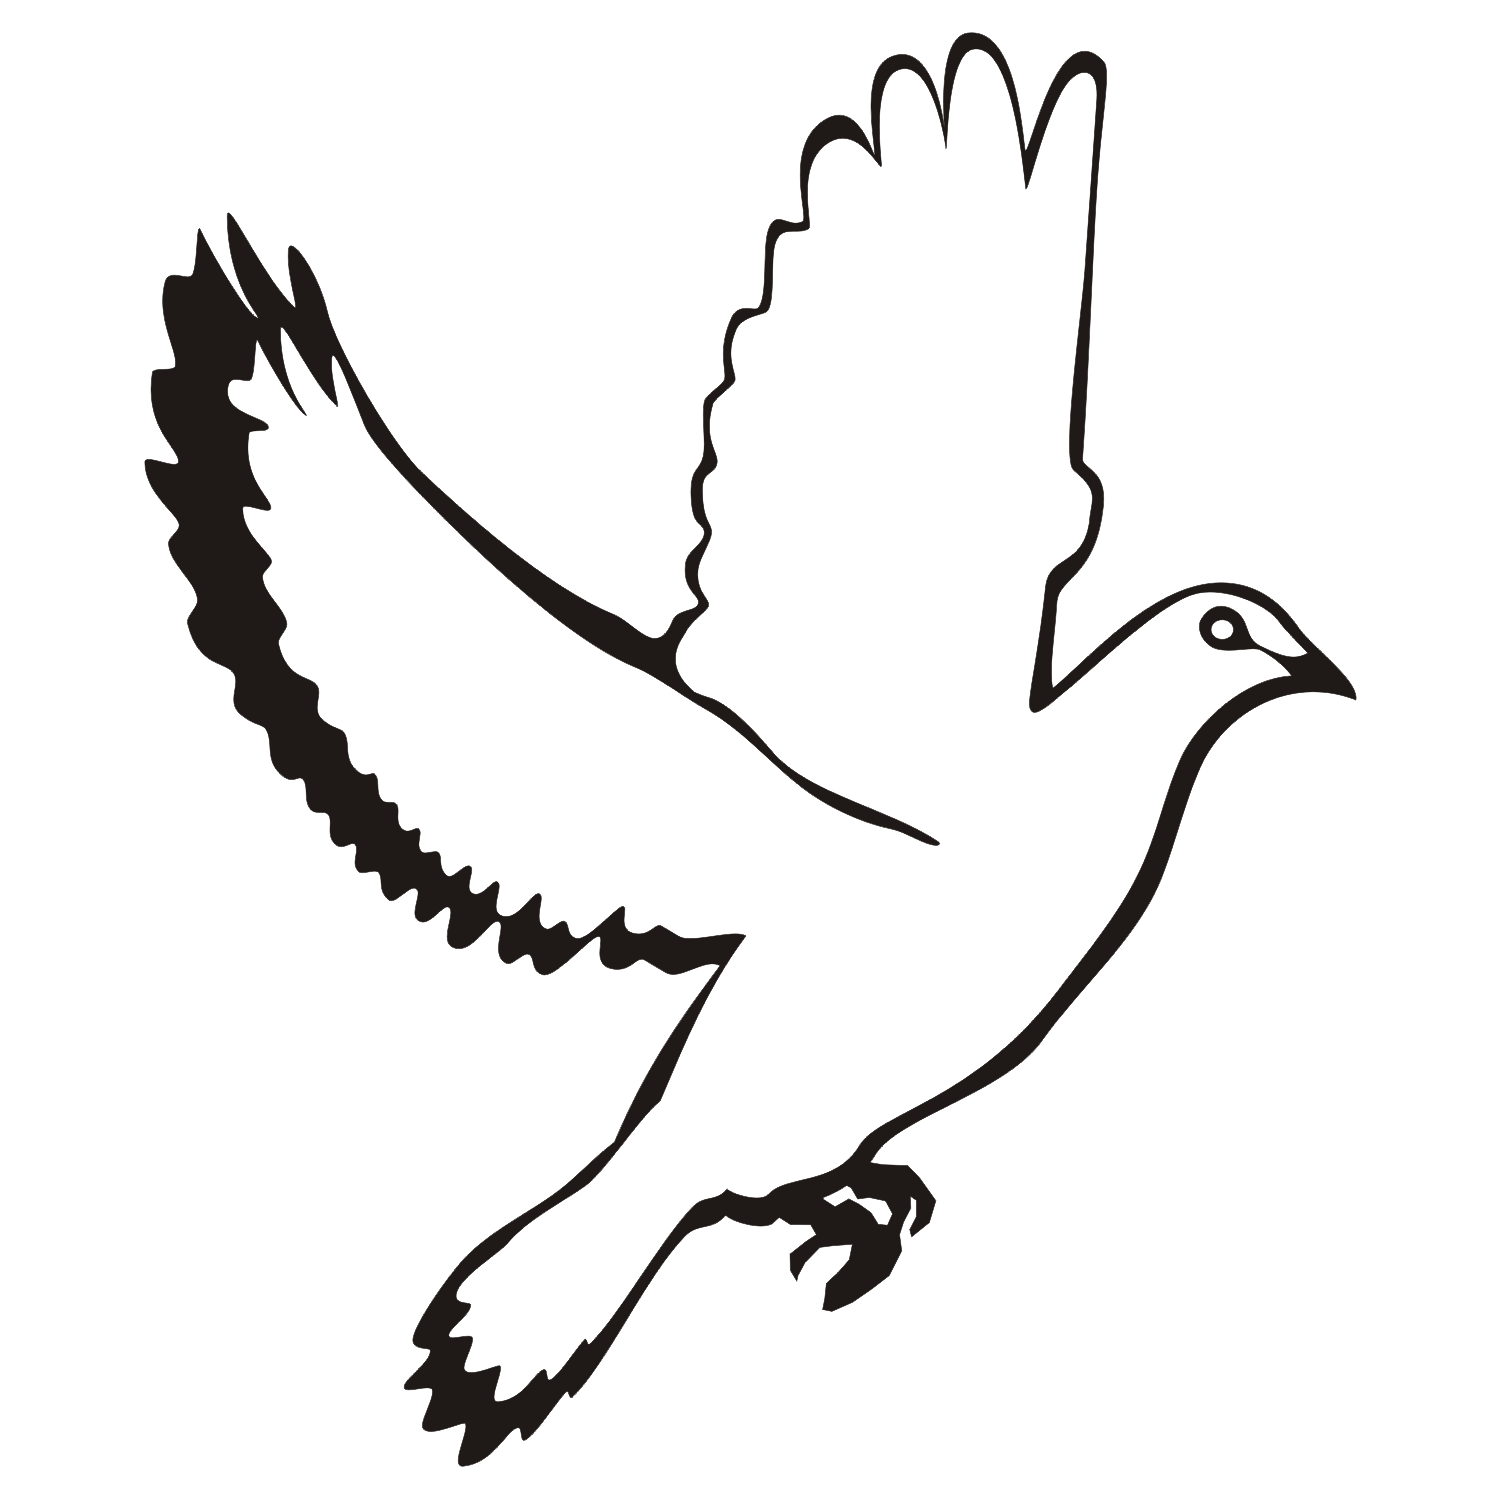 1500x1500 Flying Dove With Black Wing And Tail Tattoo Design